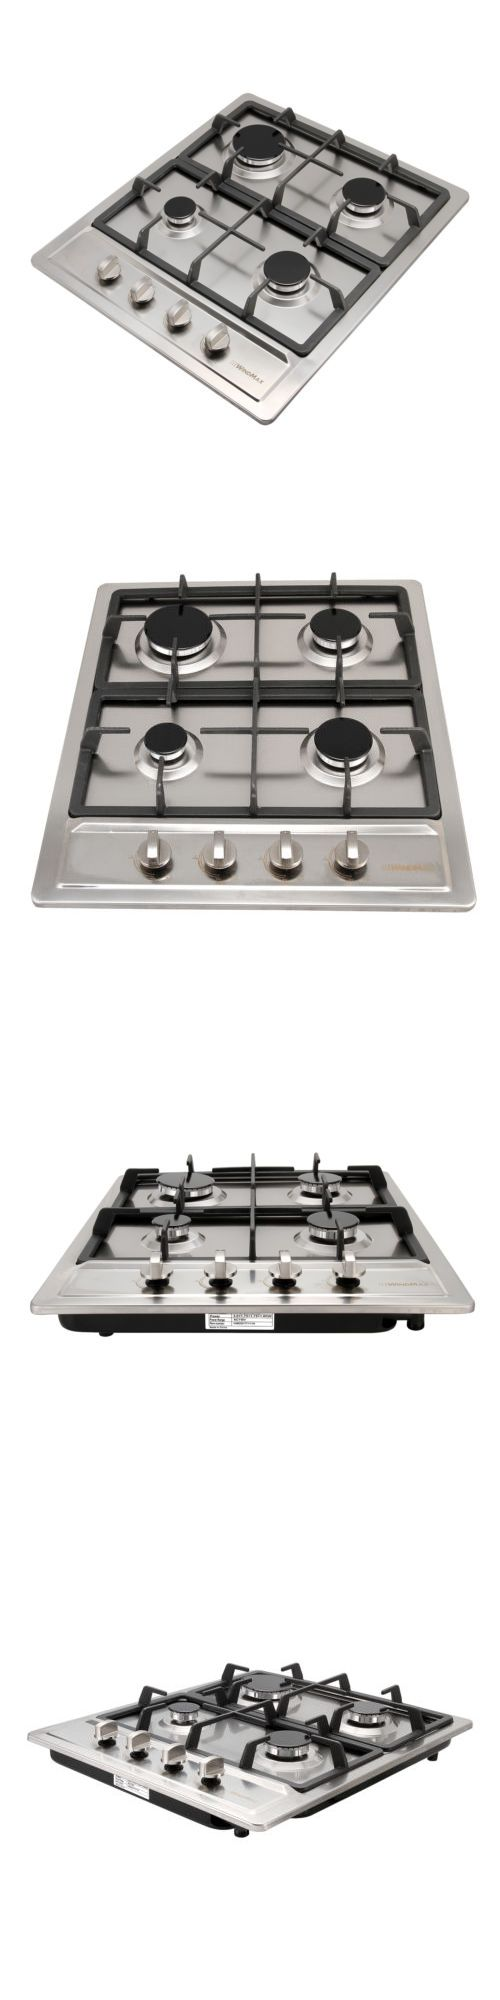 Pin On Cooktops 71246